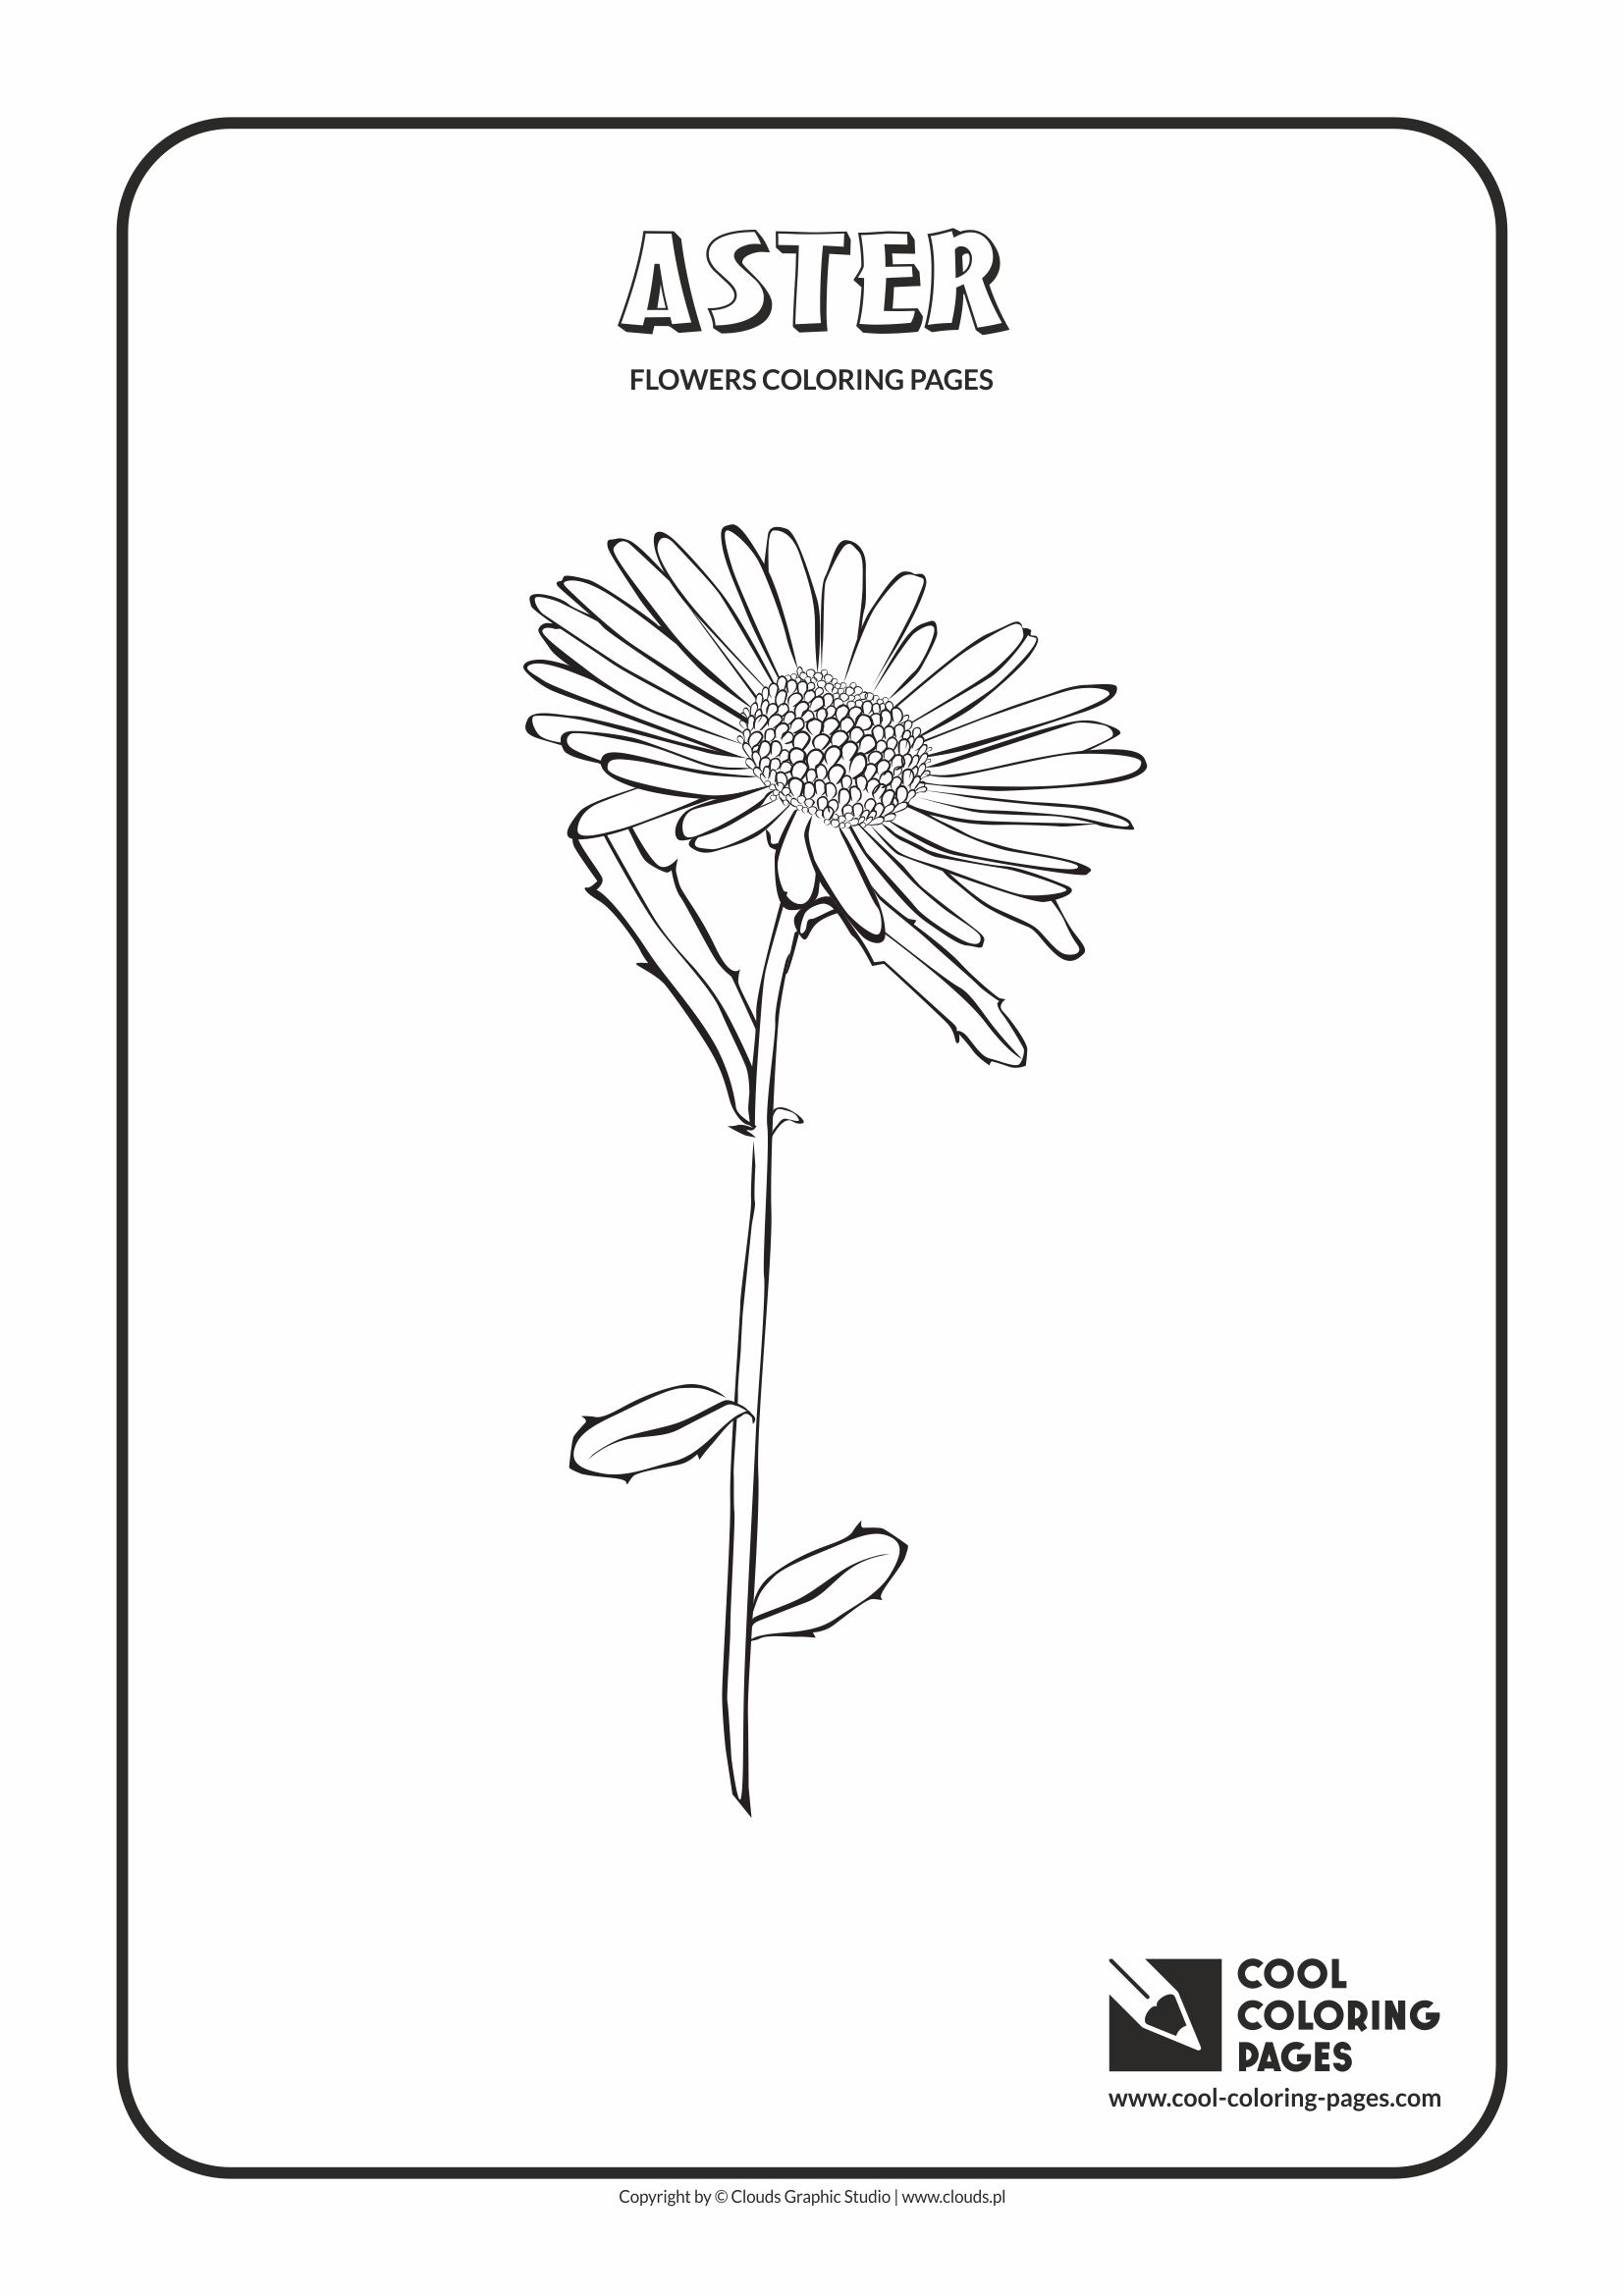 Cool Coloring Pages - Plants / Aster / Coloring page with aster